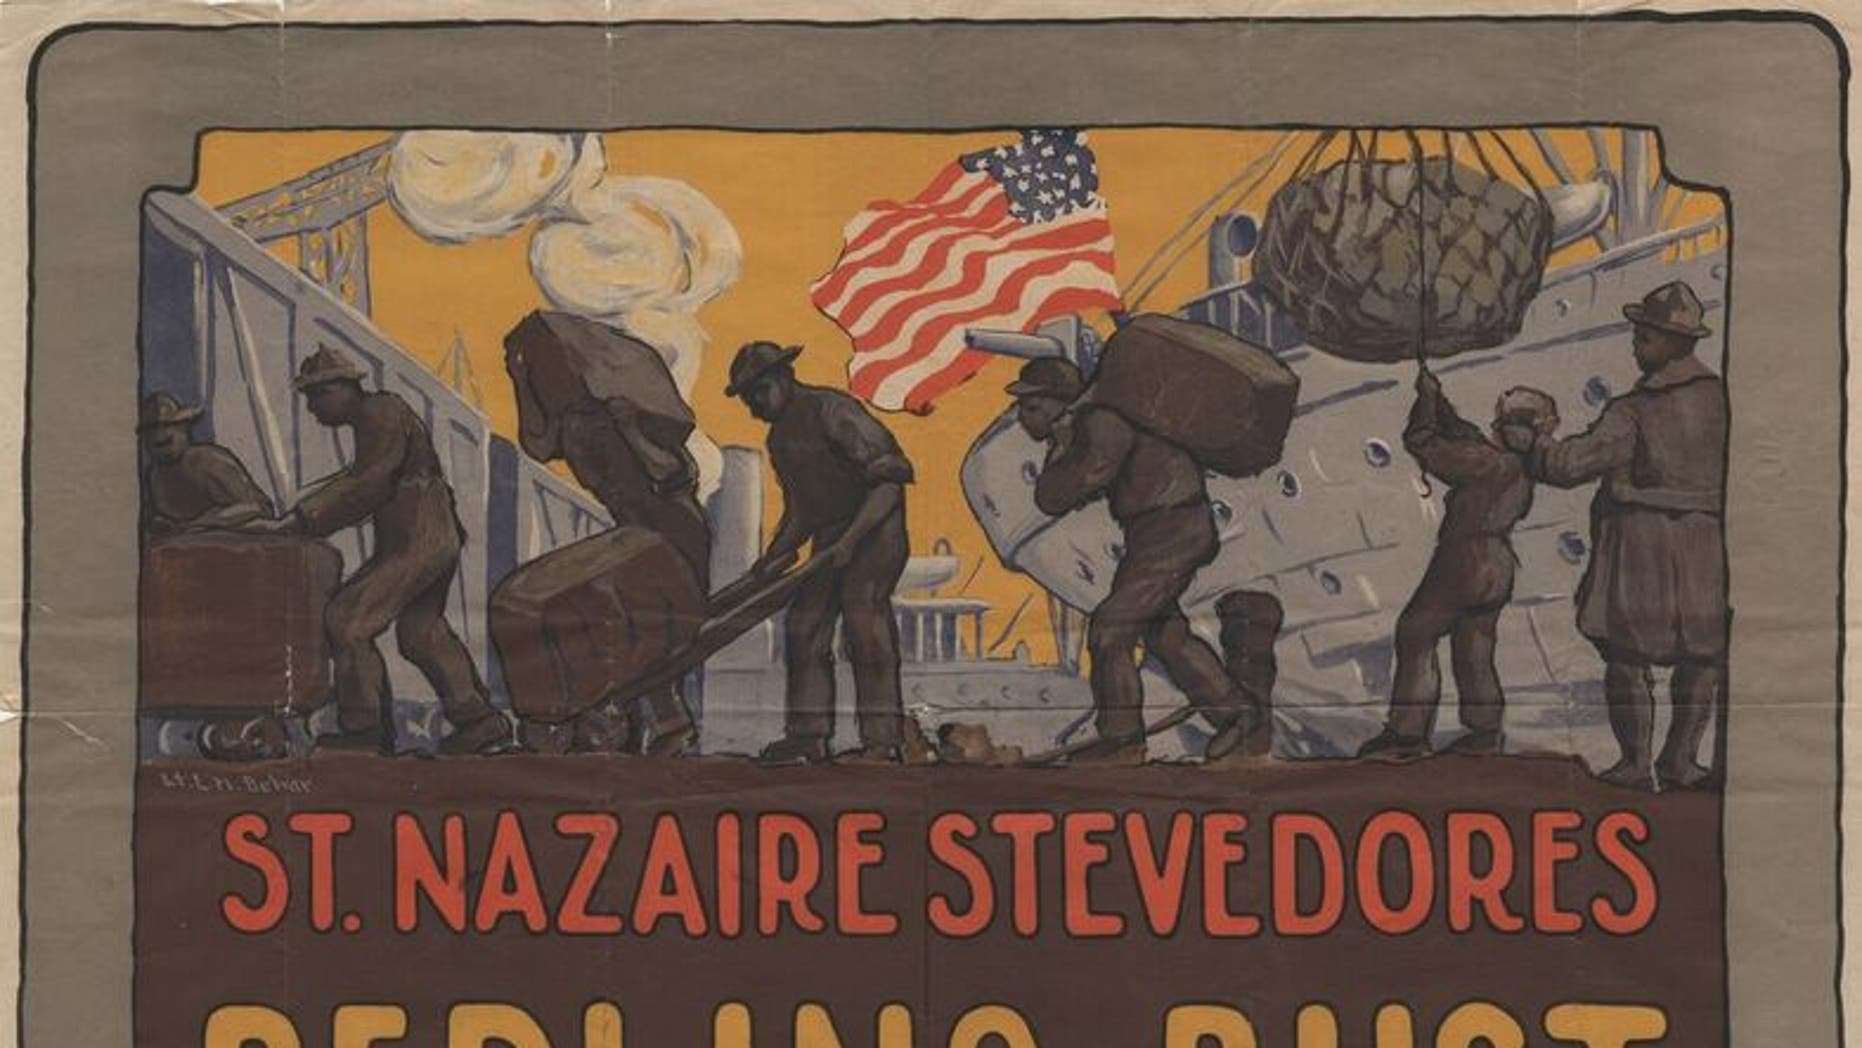 A poster depicting African-American soldiers in an Army stevedore company working on the docks of the French port of St. Nazaire.